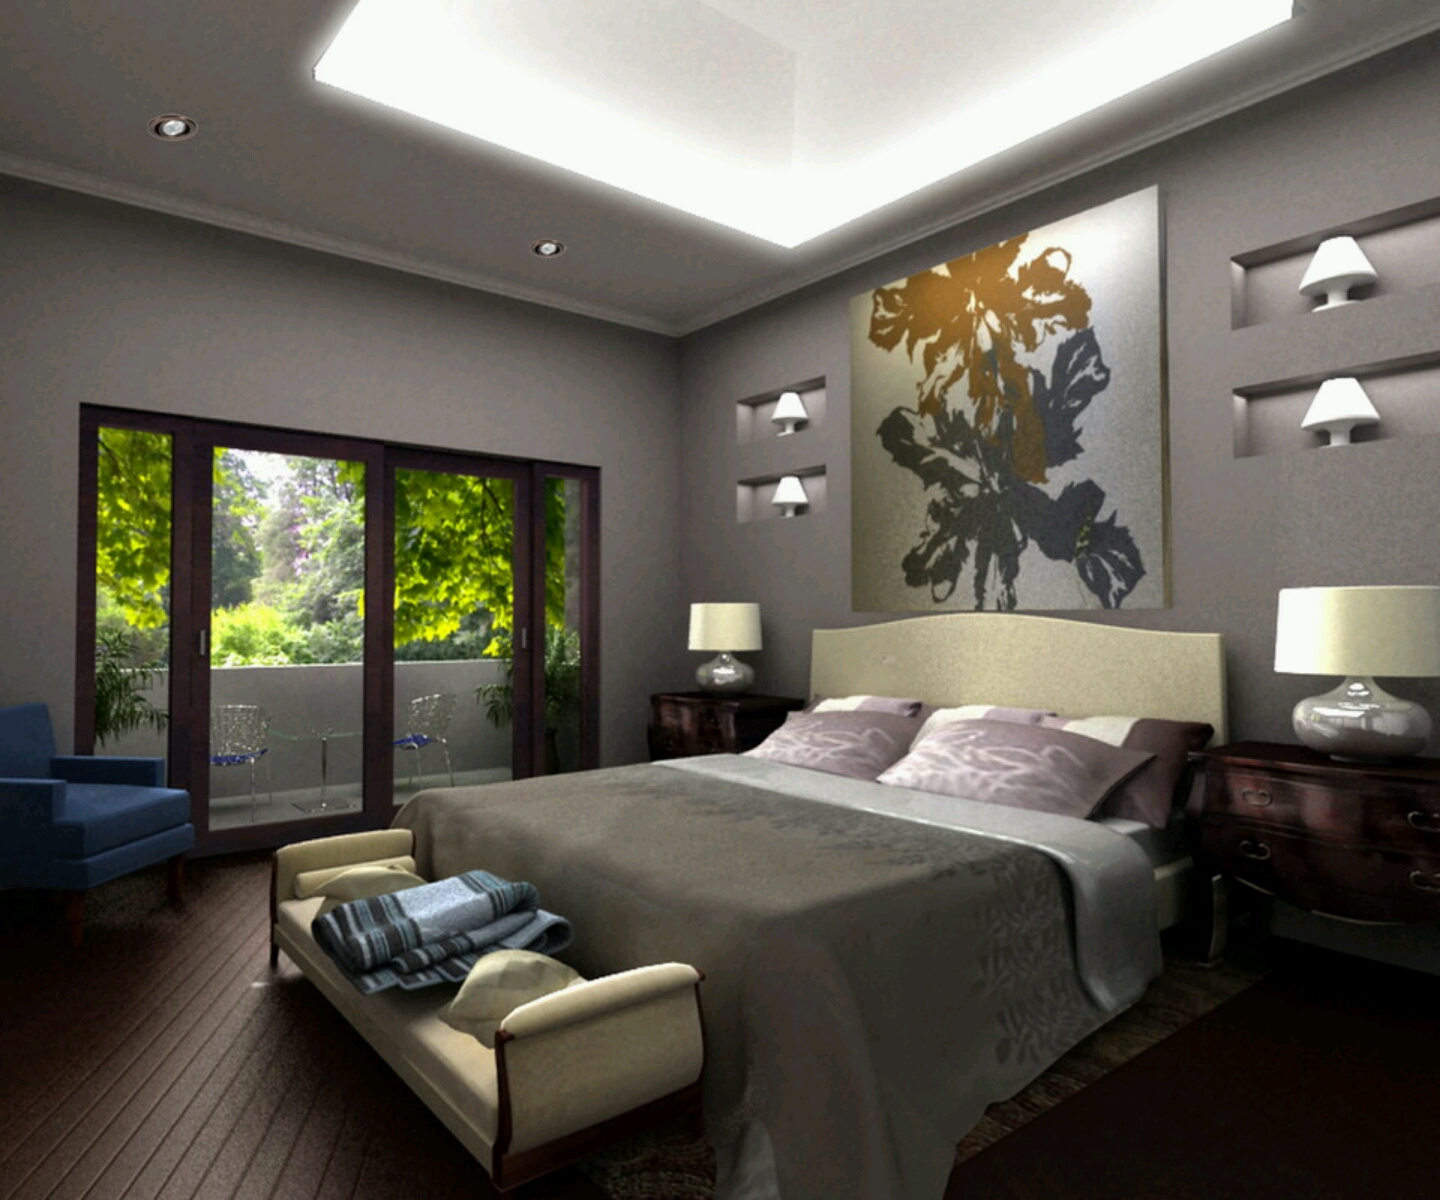 Modern bed designs beautiful bedrooms designs ideas furniture gallery - Bedrooms designs ...